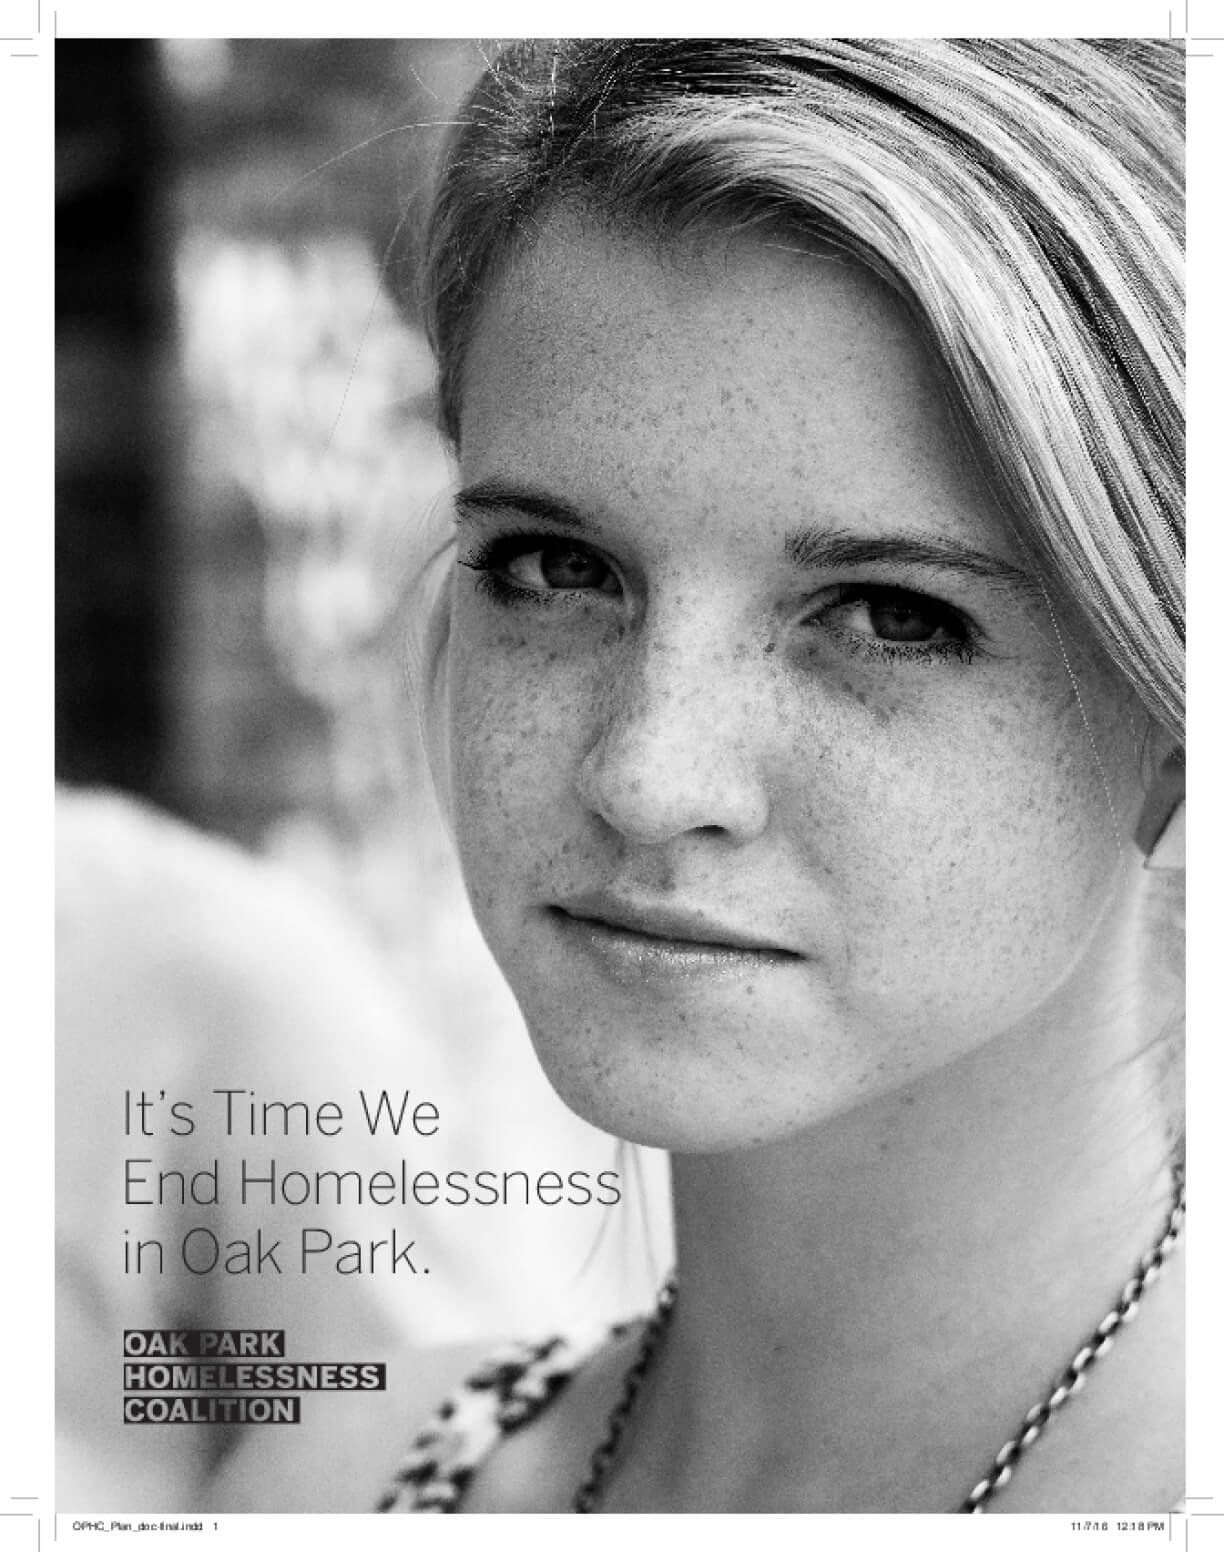 It's Time We End Homelessness in Oak Park